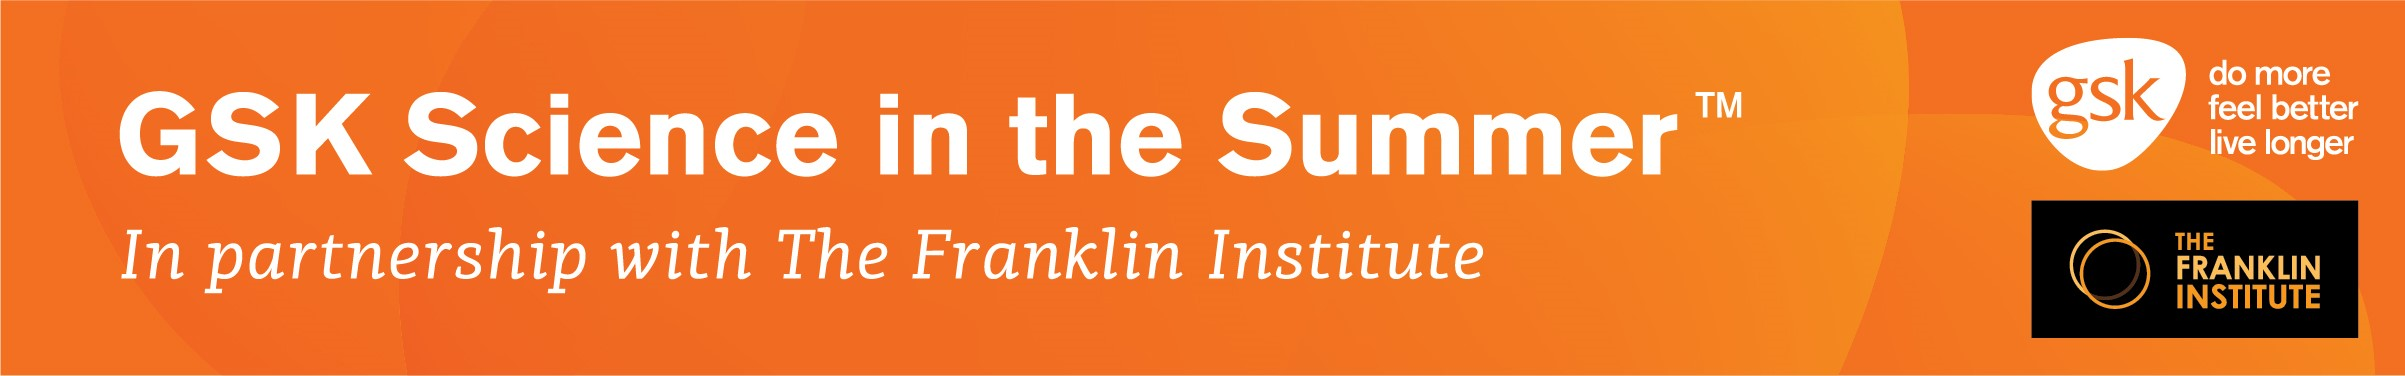 GSK Science in the Summer Header